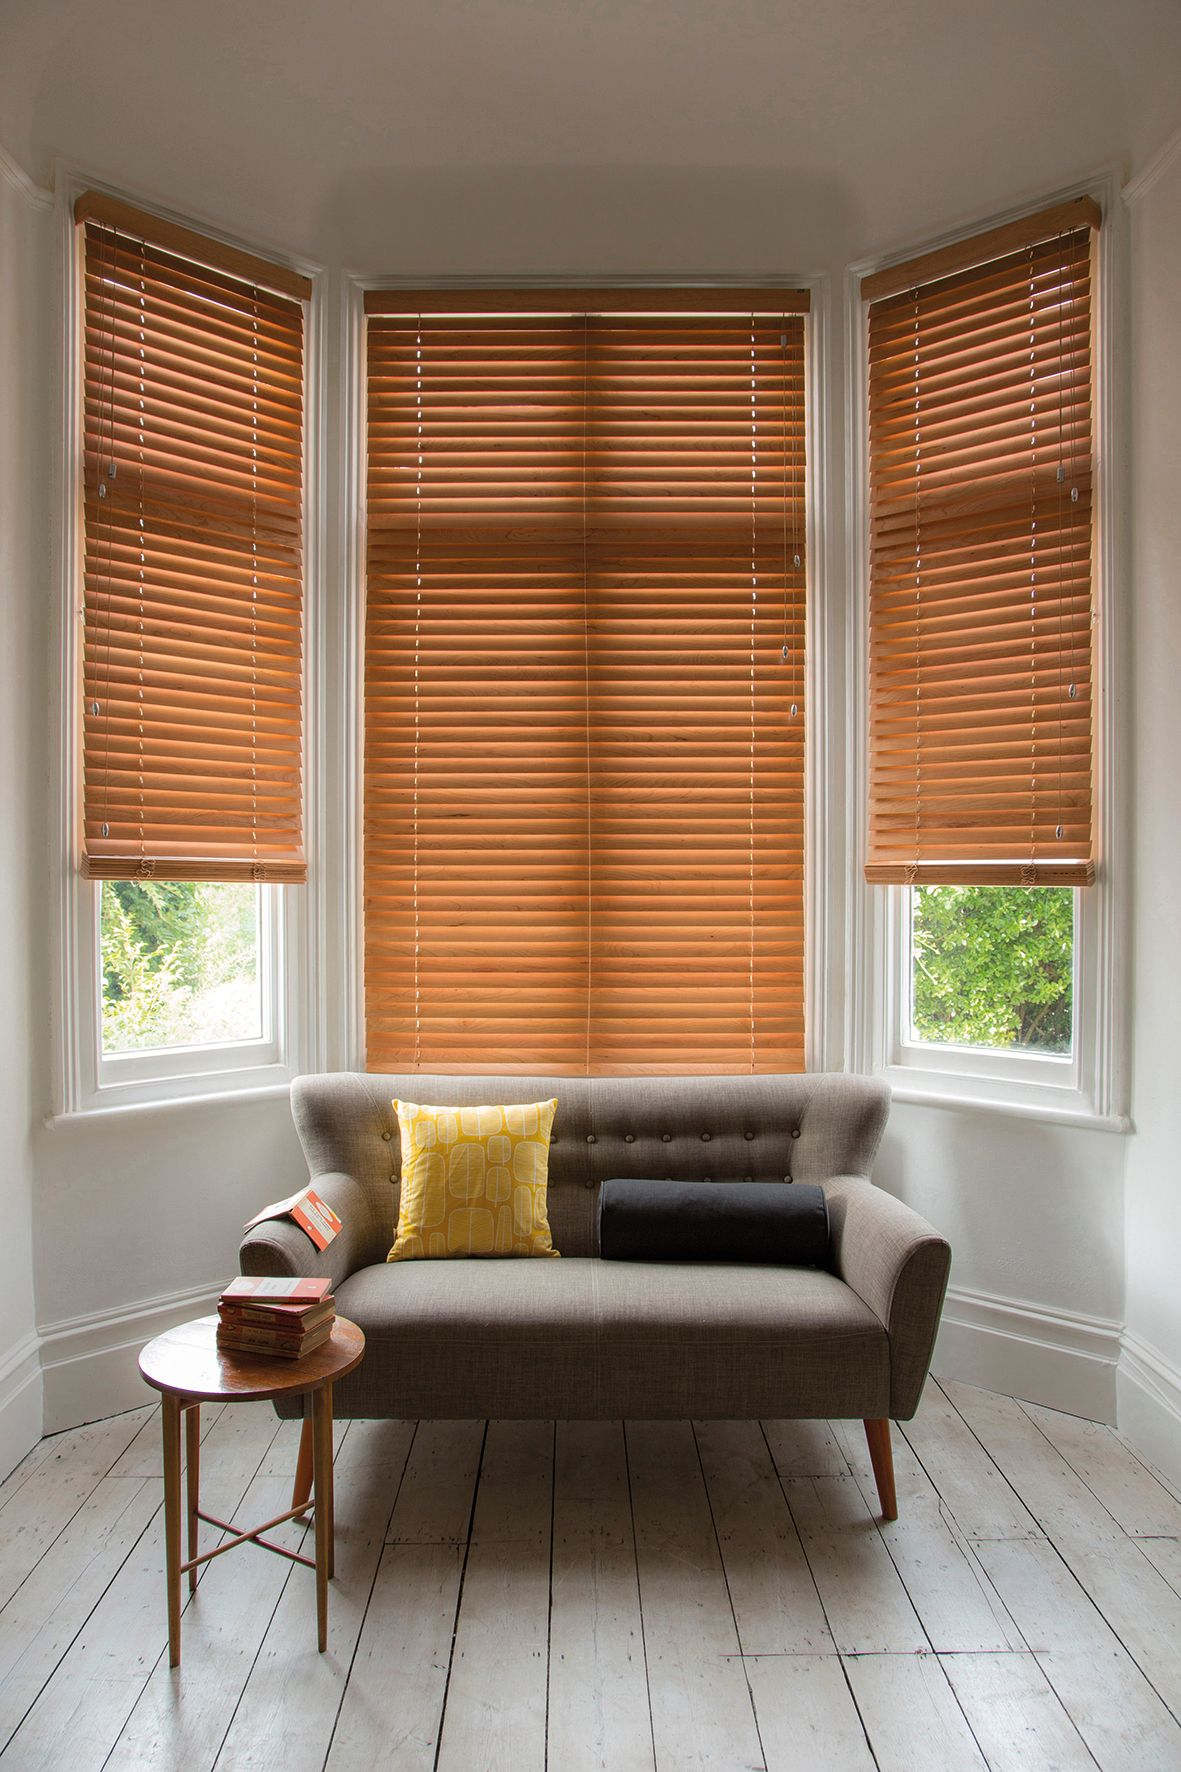 Luxaflex 174 Wood Blinds Use Wooden Blinds With Soft Sage